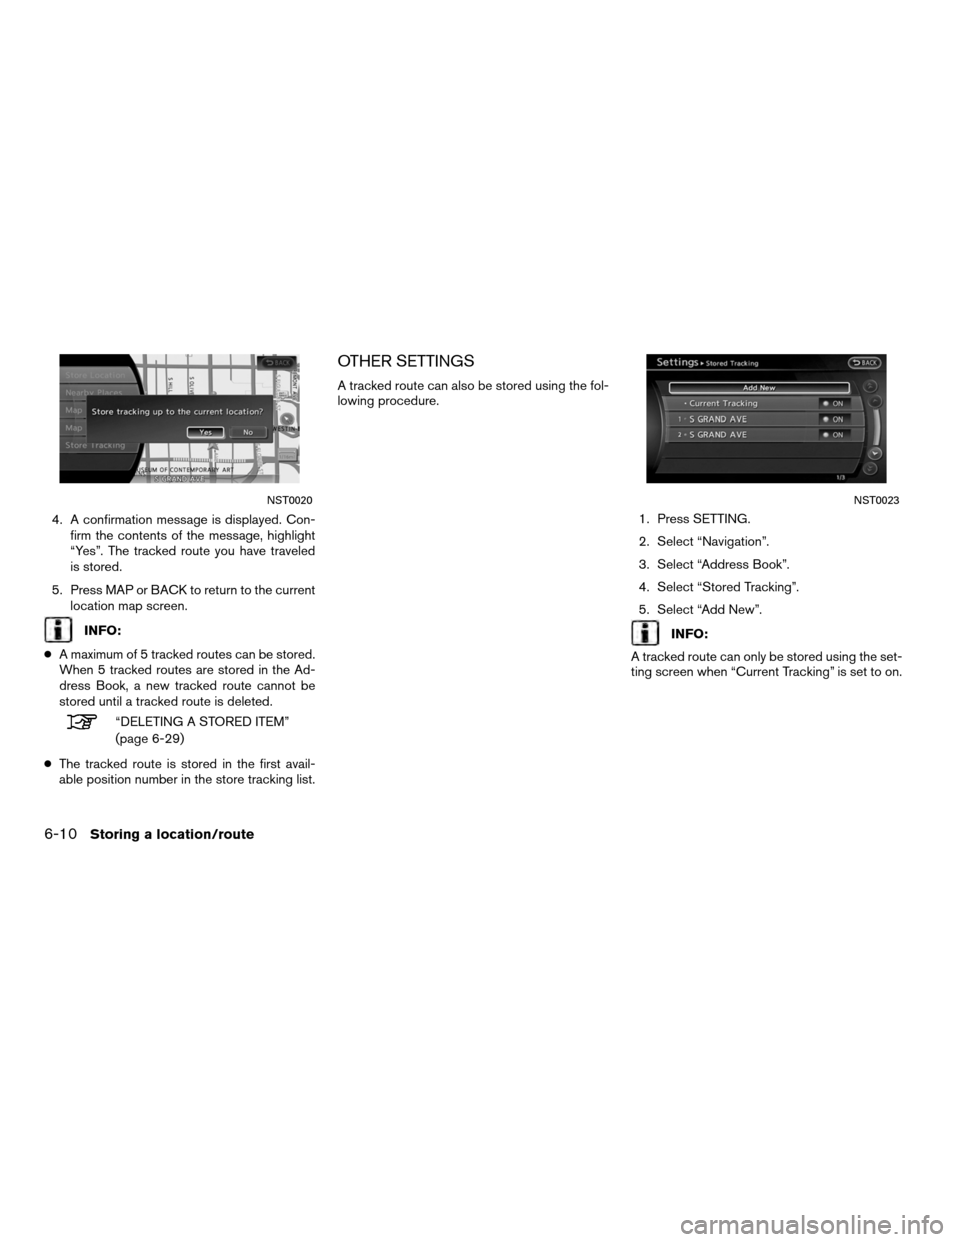 NISSAN ALTIMA COUPE 2012 D32 / 4.G Navigation Manual, Page 158